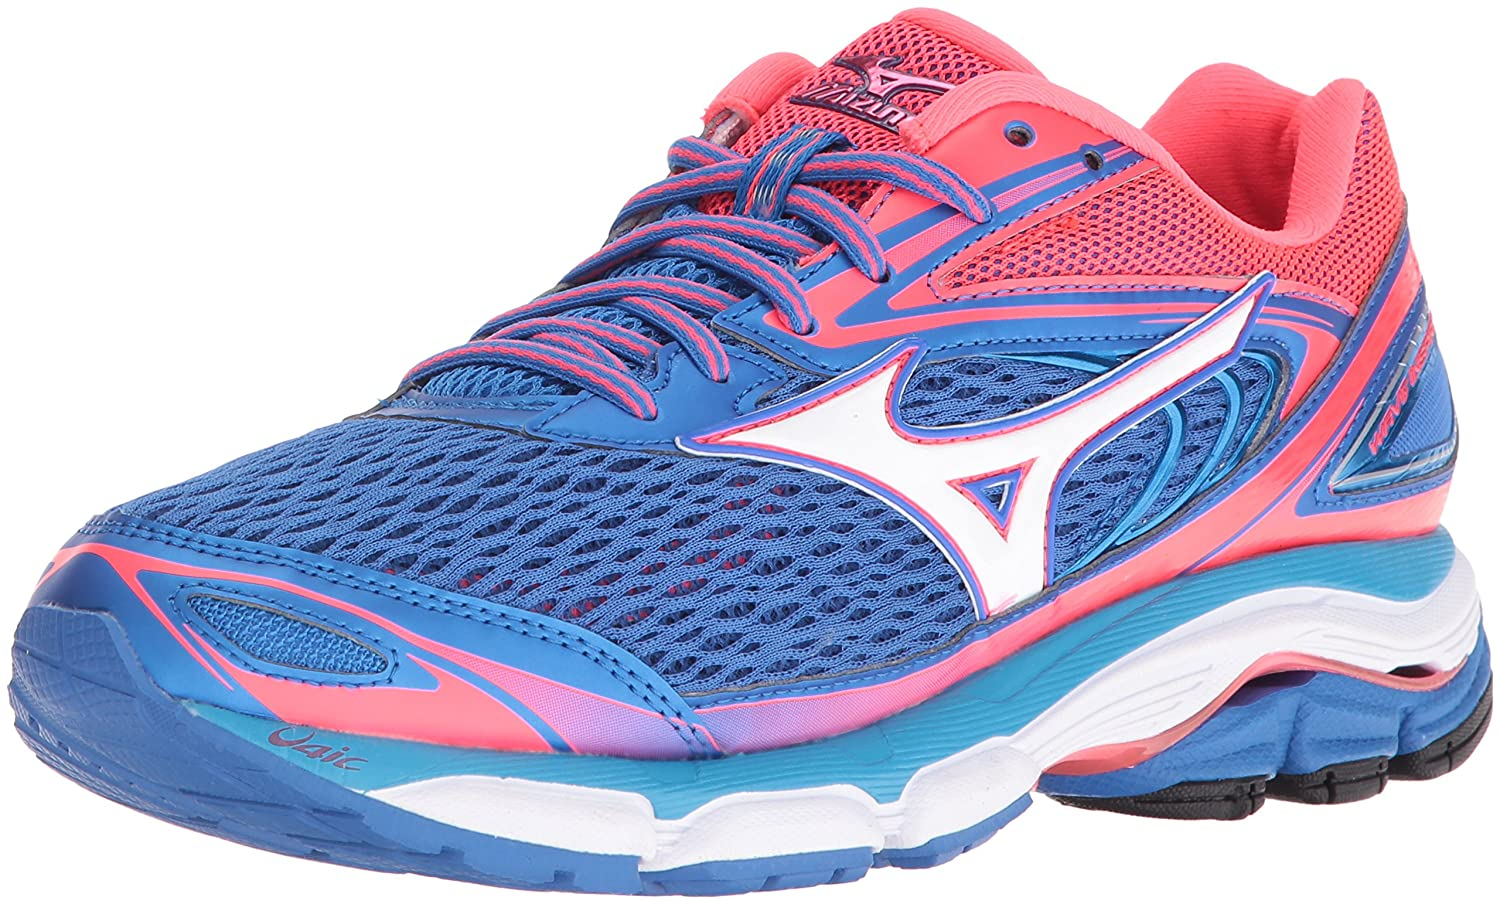 Strong bluee Diva Pink White Mizuno Women's Wave Inspire 13 2A Running shoes